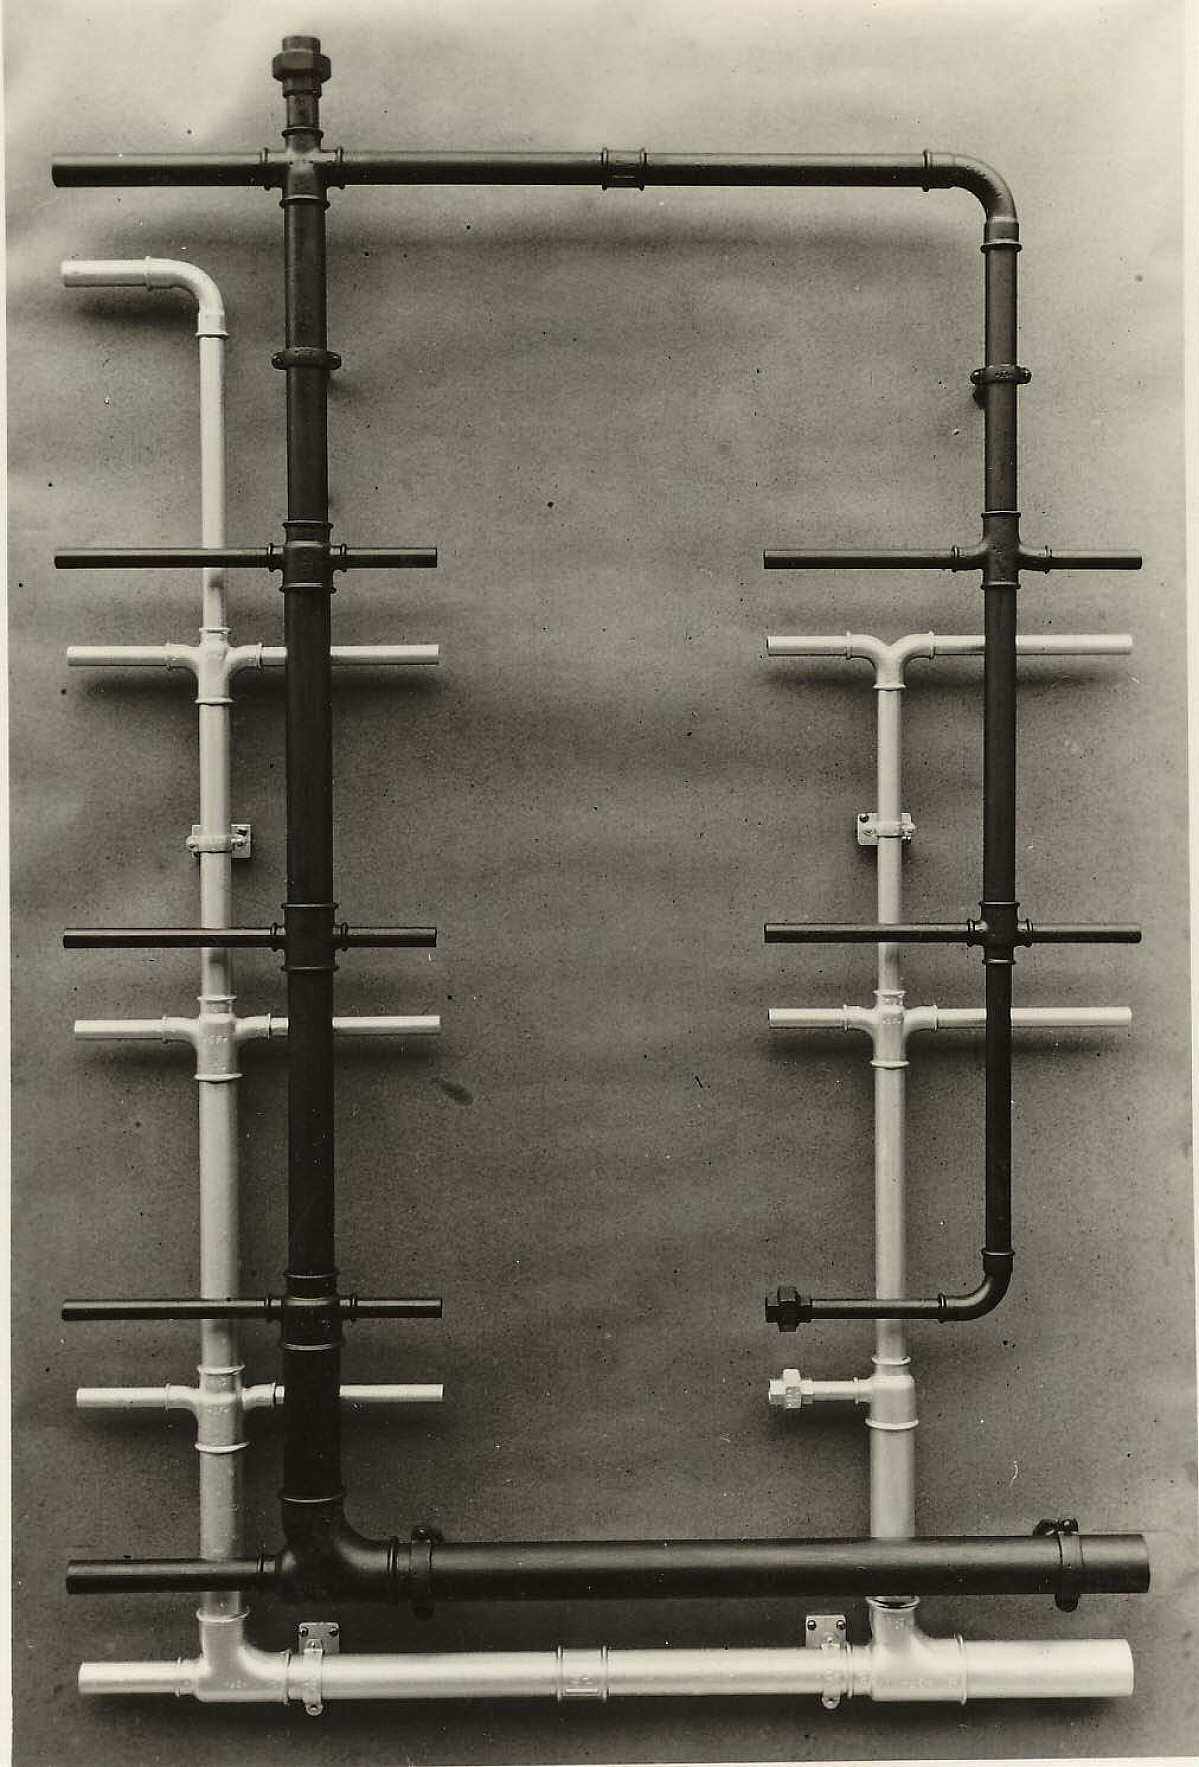 GFA 24/53.1337: Pipe system with fittings